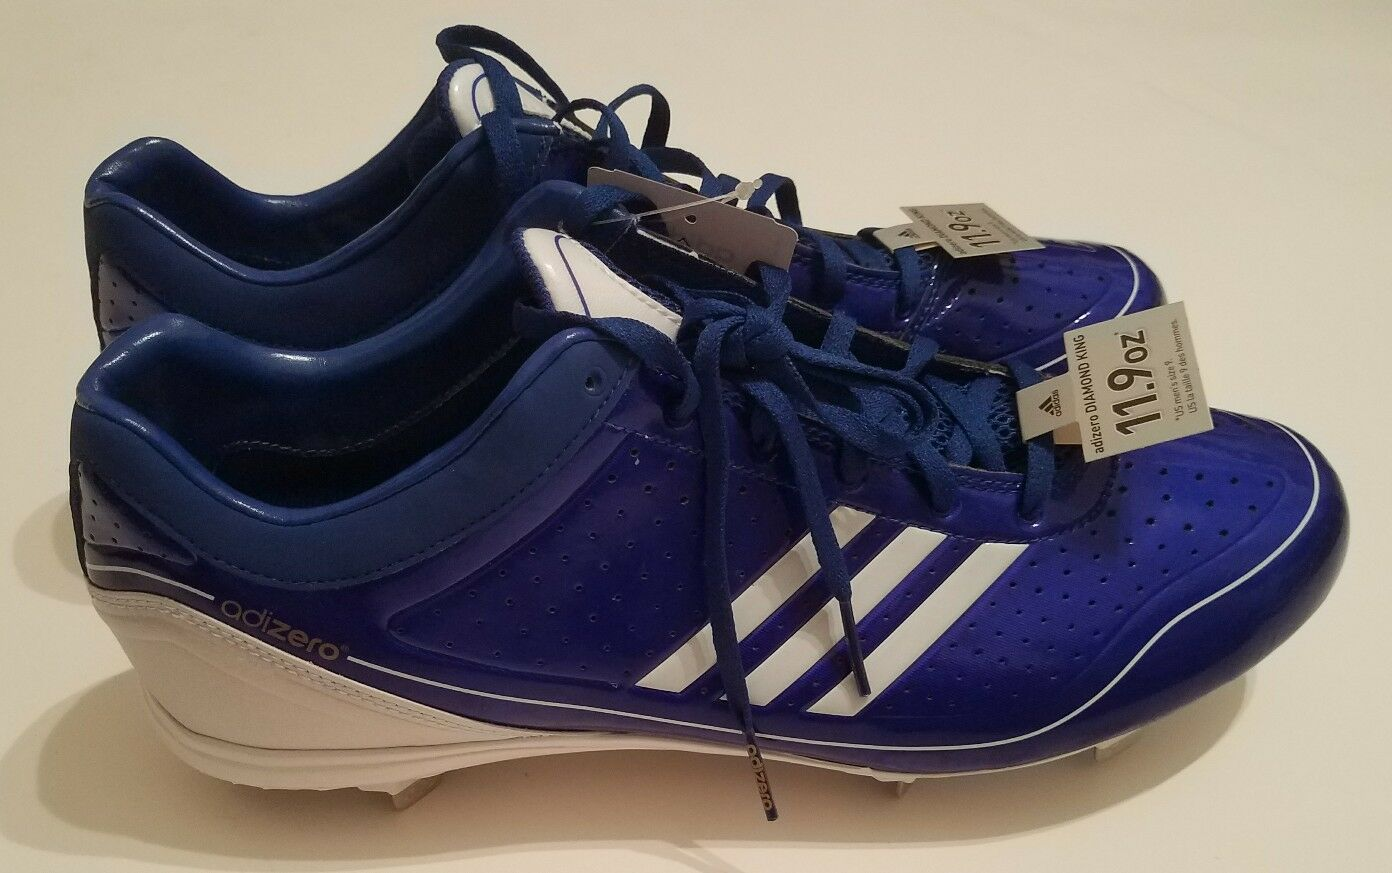 separation shoes 129f0 10eea ... Adidas adizero adizero adizero Diamond King Low Baseball Cleats Shoes  Blue Men s Size 13 New ba551c ...